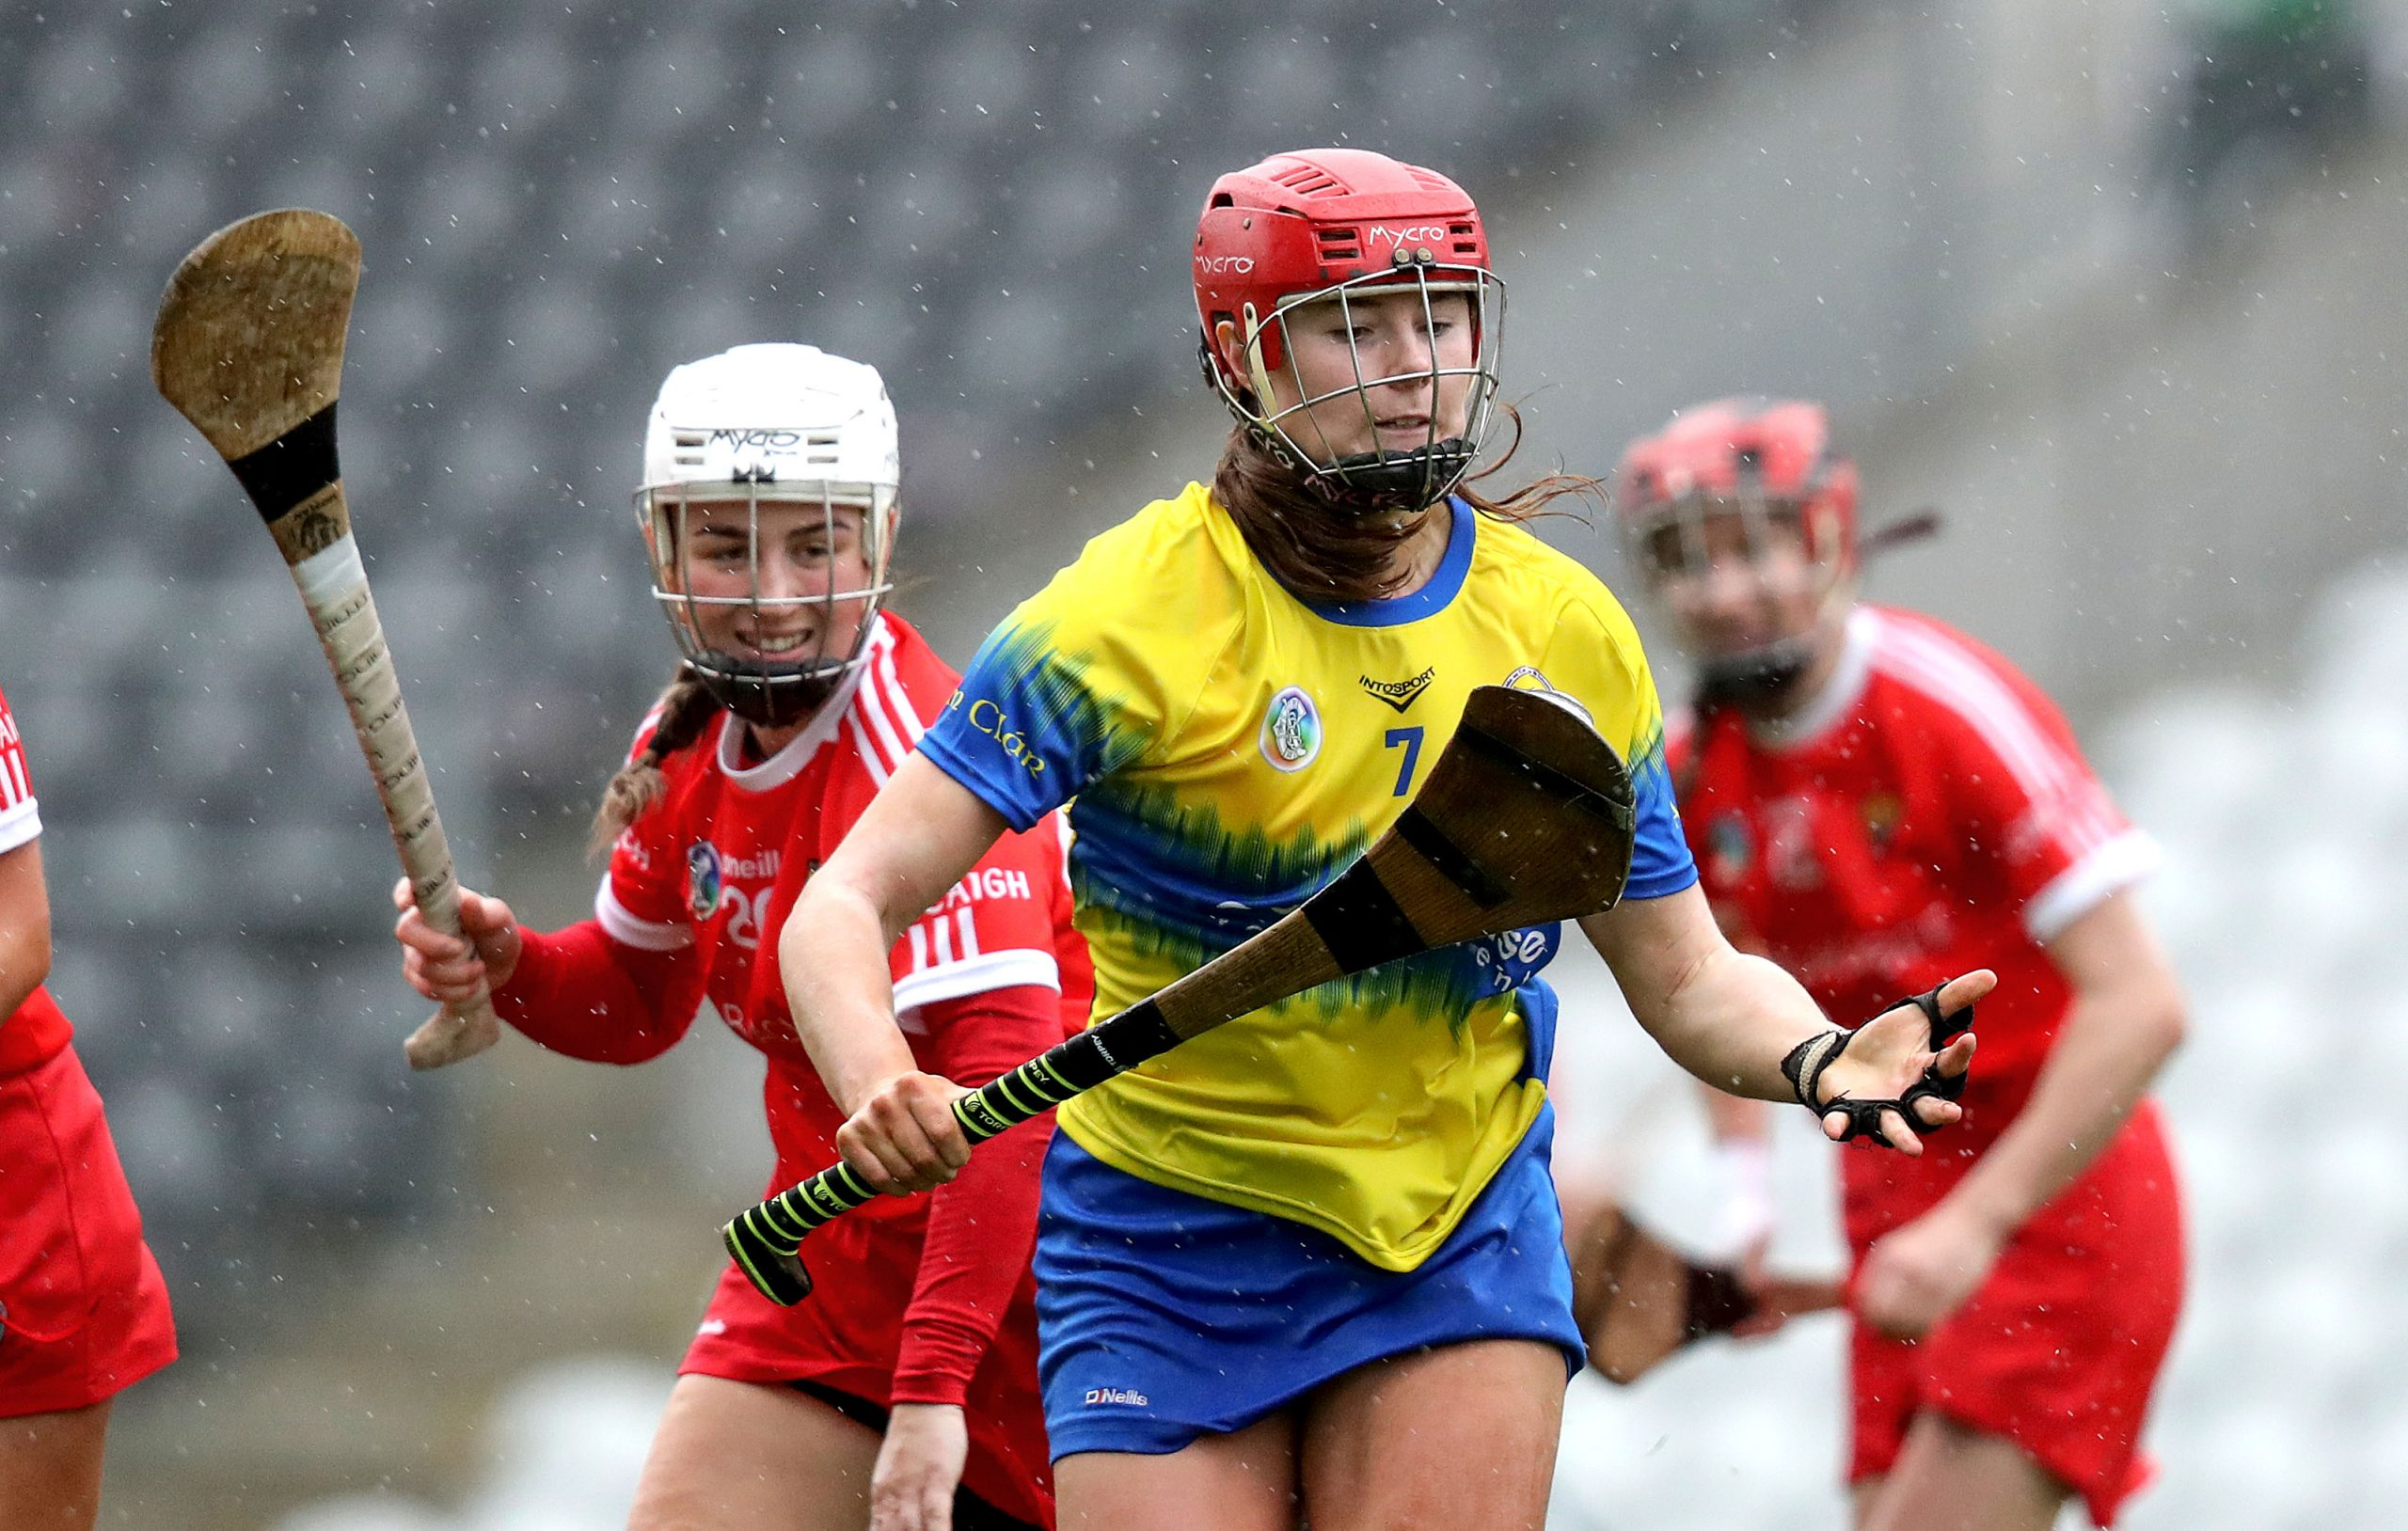 """I have such pride in playing for Clare"" – Alannah Ryan"